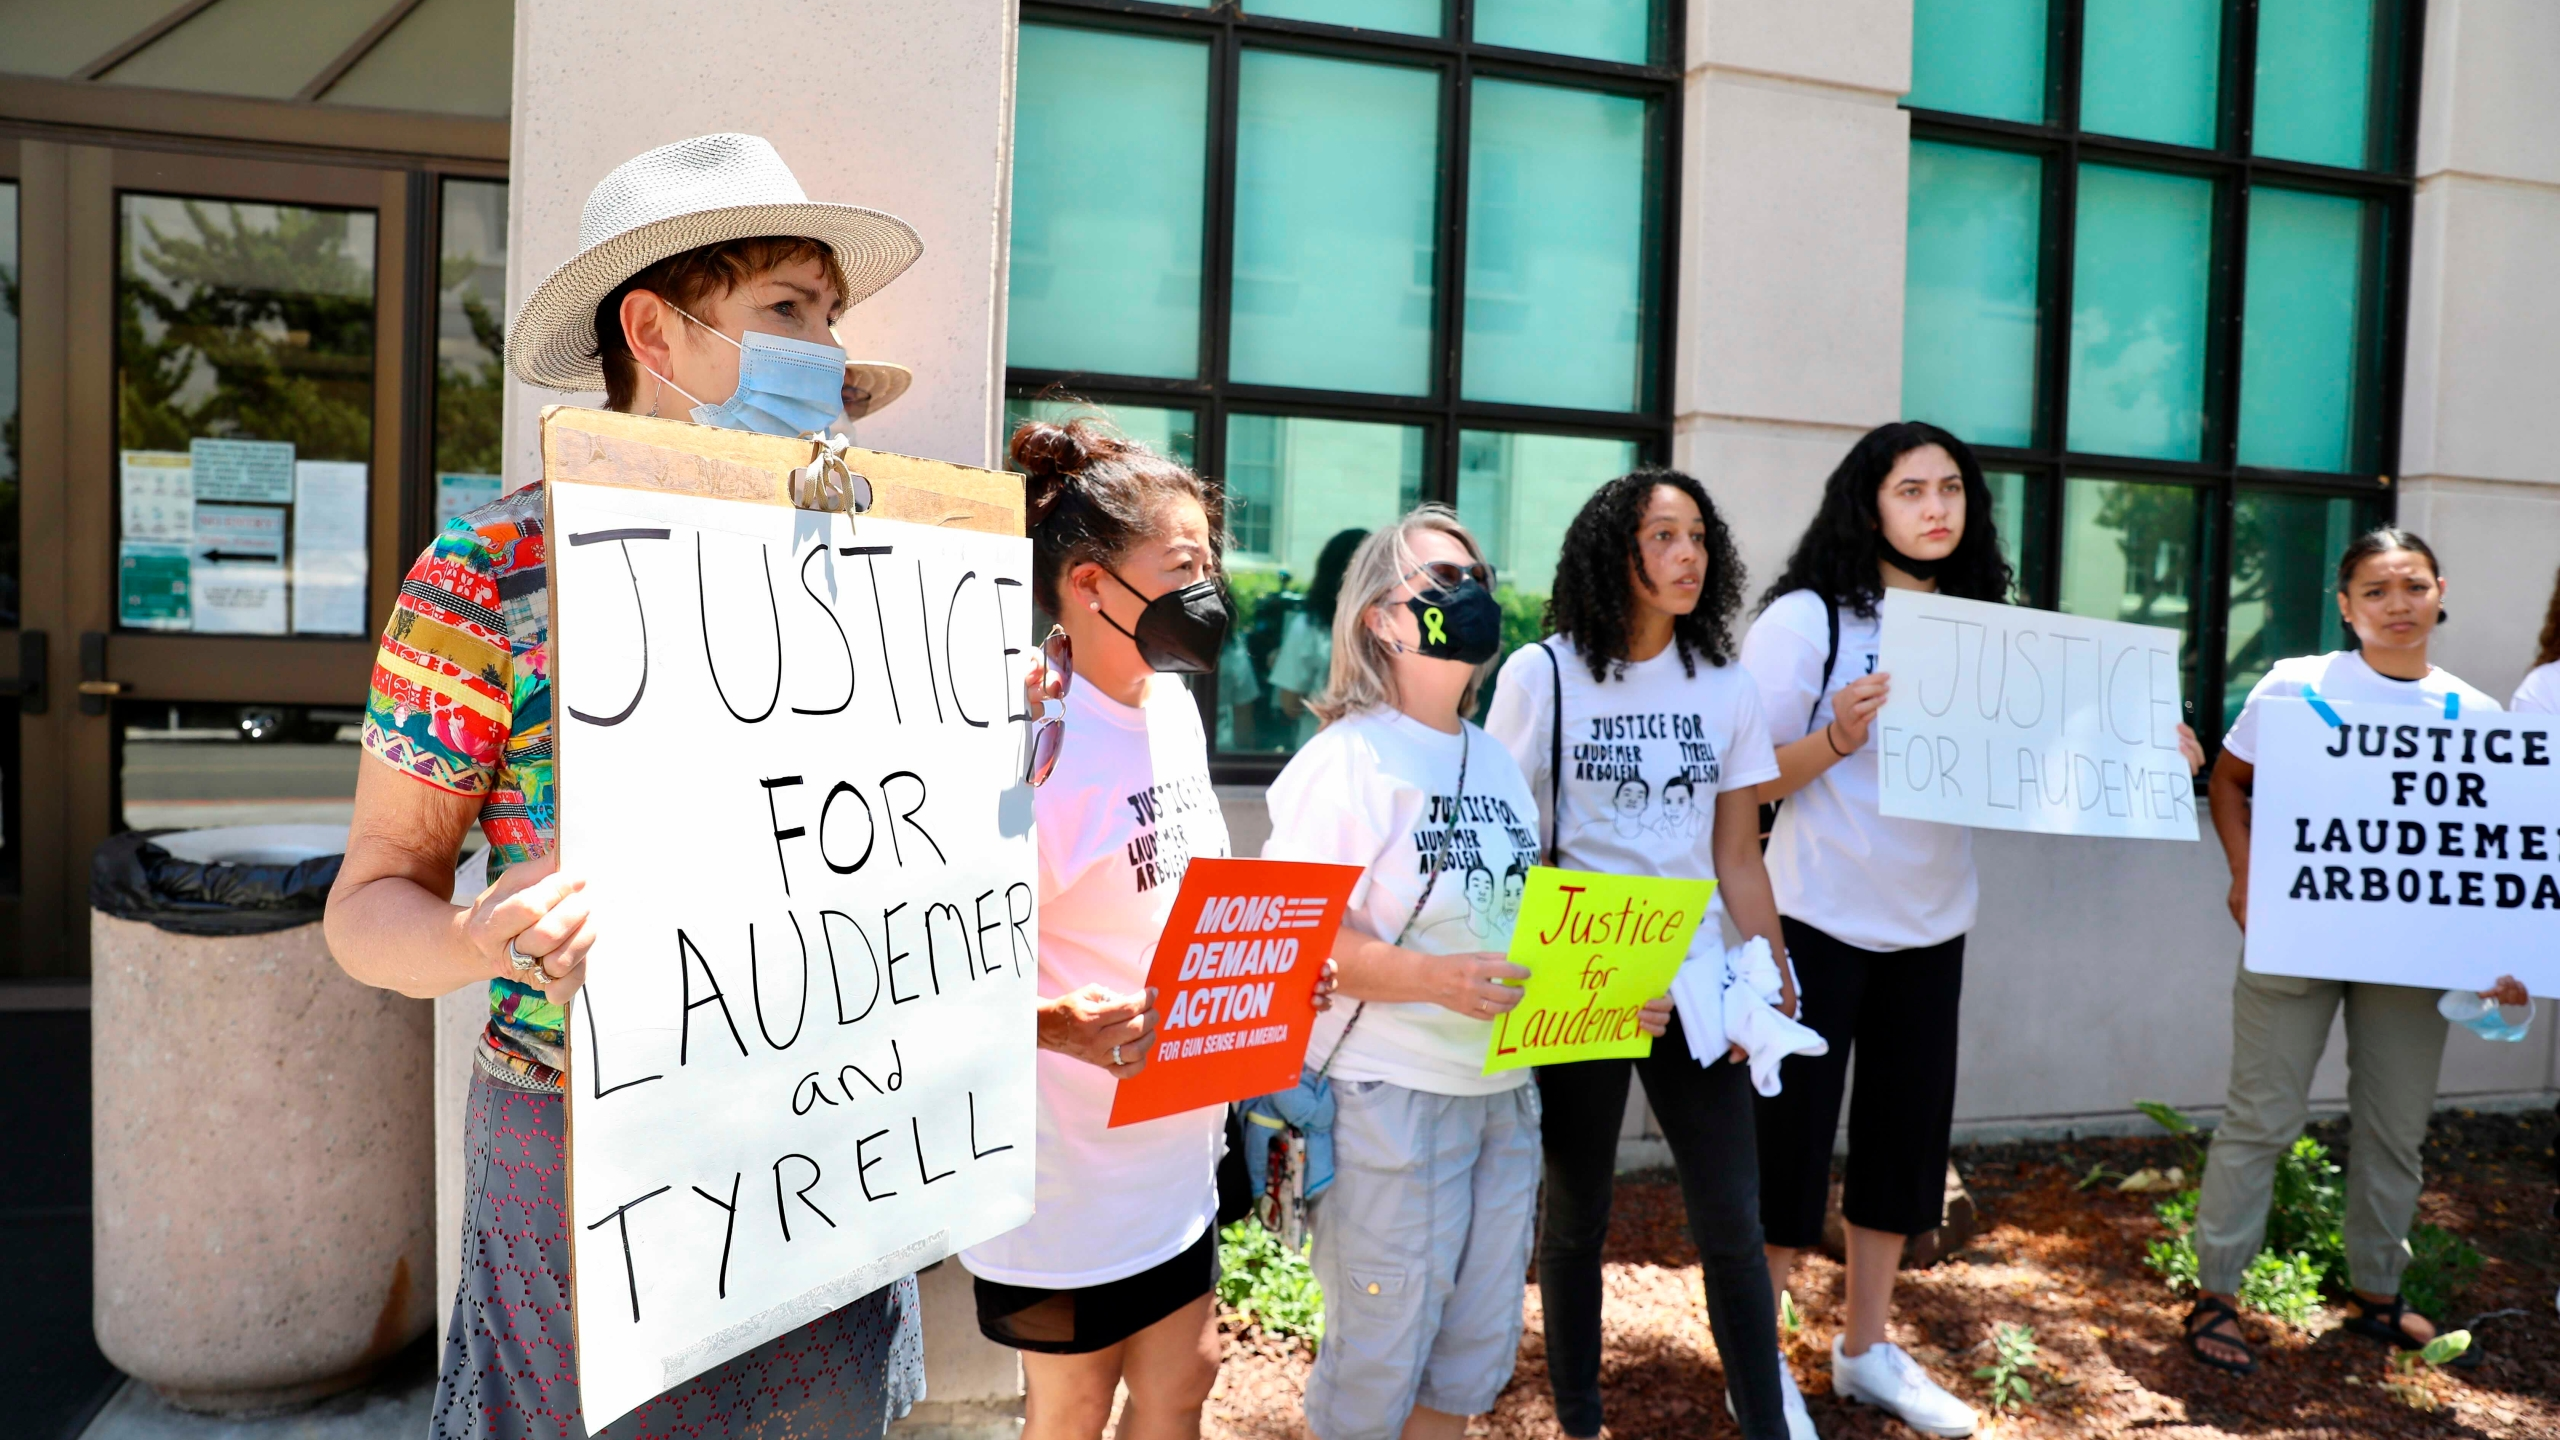 Supporters of the late Laudemer Arboleda and the late Tyrell Wilson hold signs following an arraignment hearing for Danville police officer Andrew Hall outside the A.F. Bray Courthouse in Martinez, Calif., on June 16, 2021.(Yalonda M. James/San Francisco Chronicle via AP)